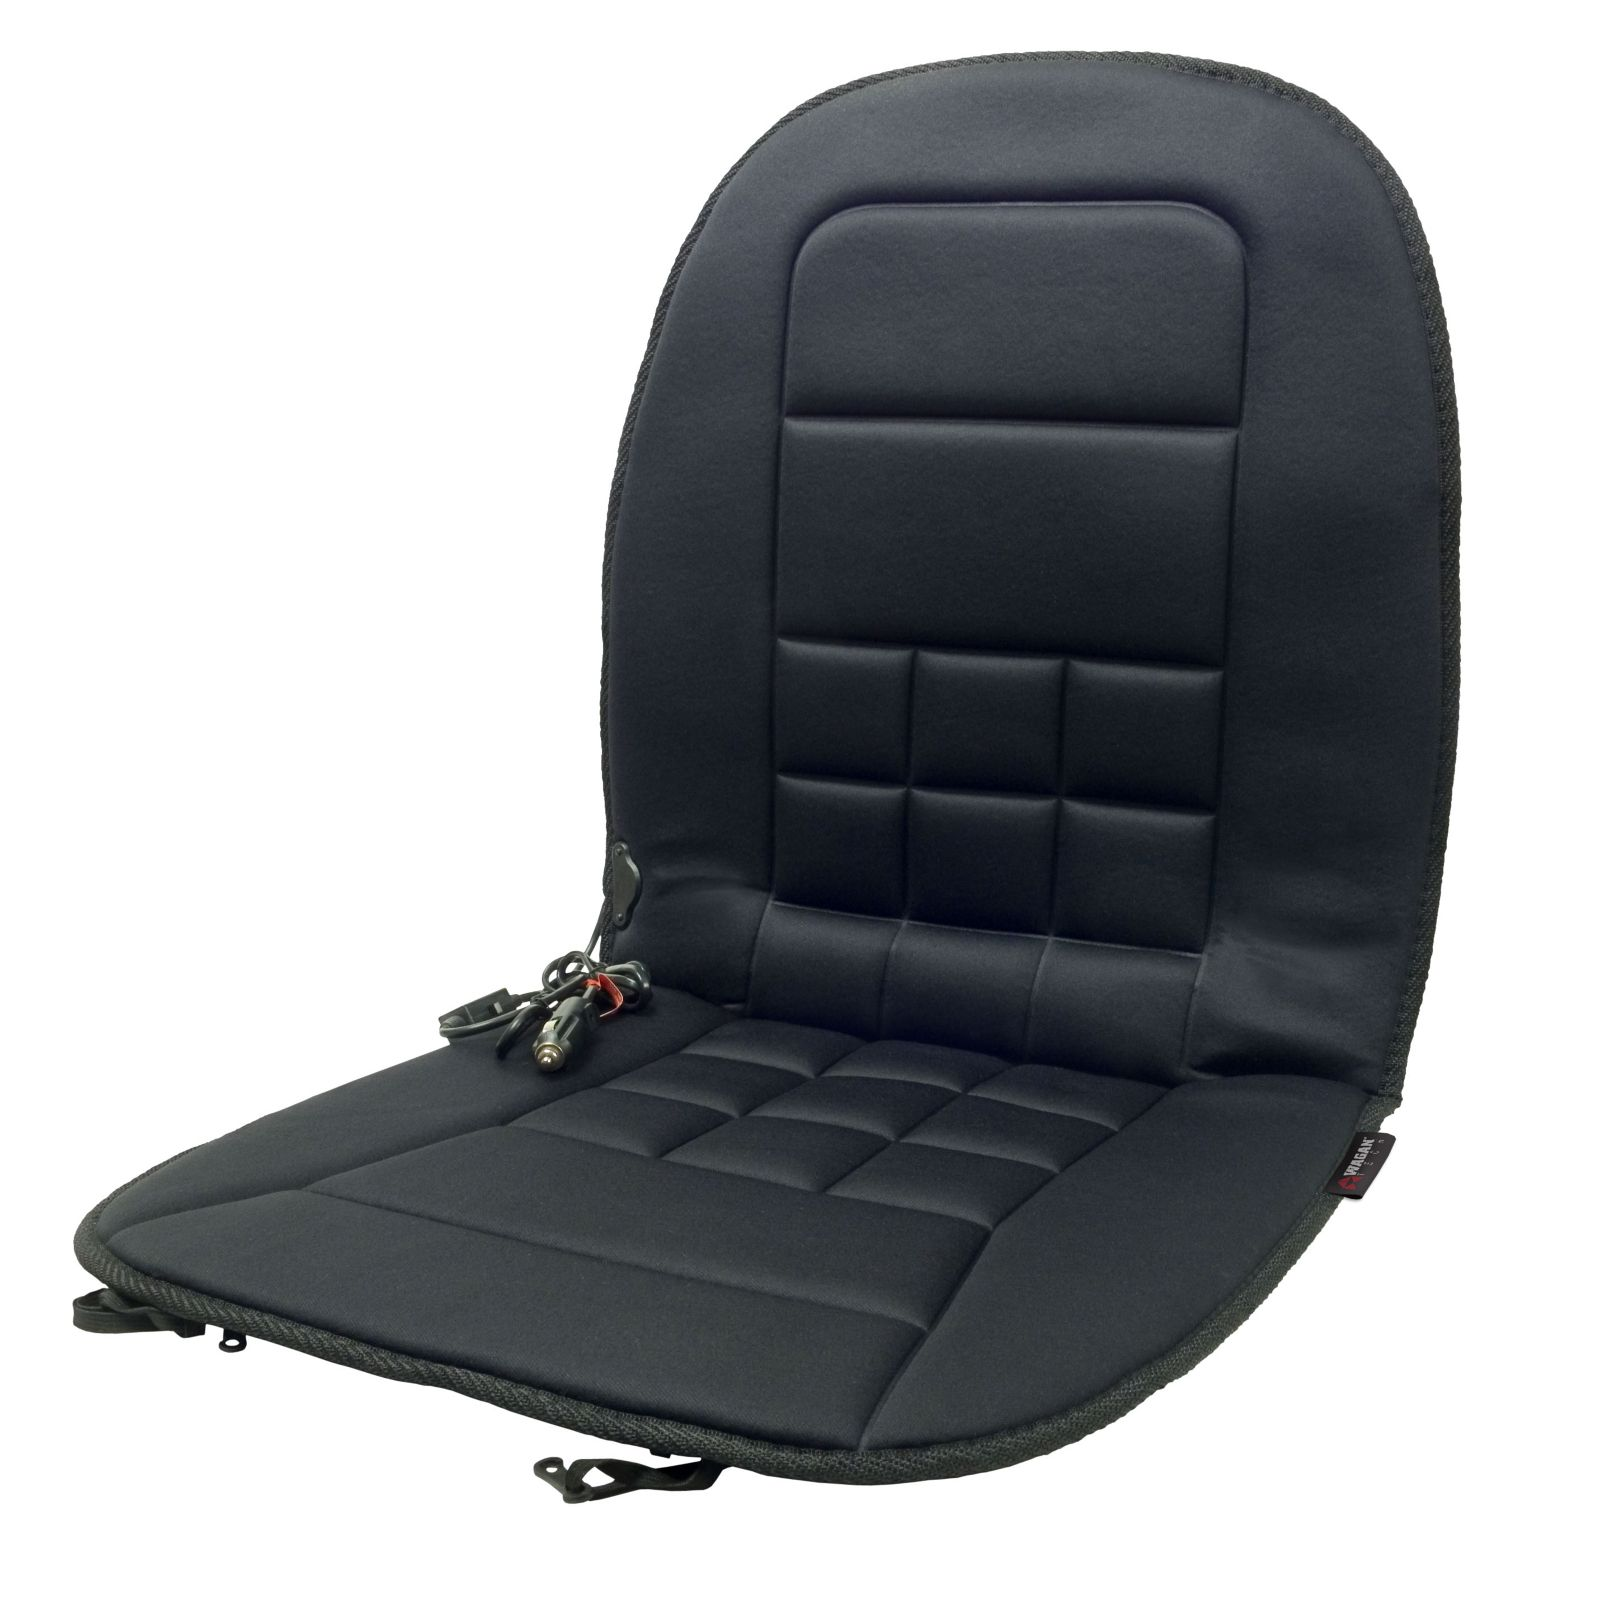 chair seat covers at walmart used banquet tables and chairs wagan 12v heated cushion